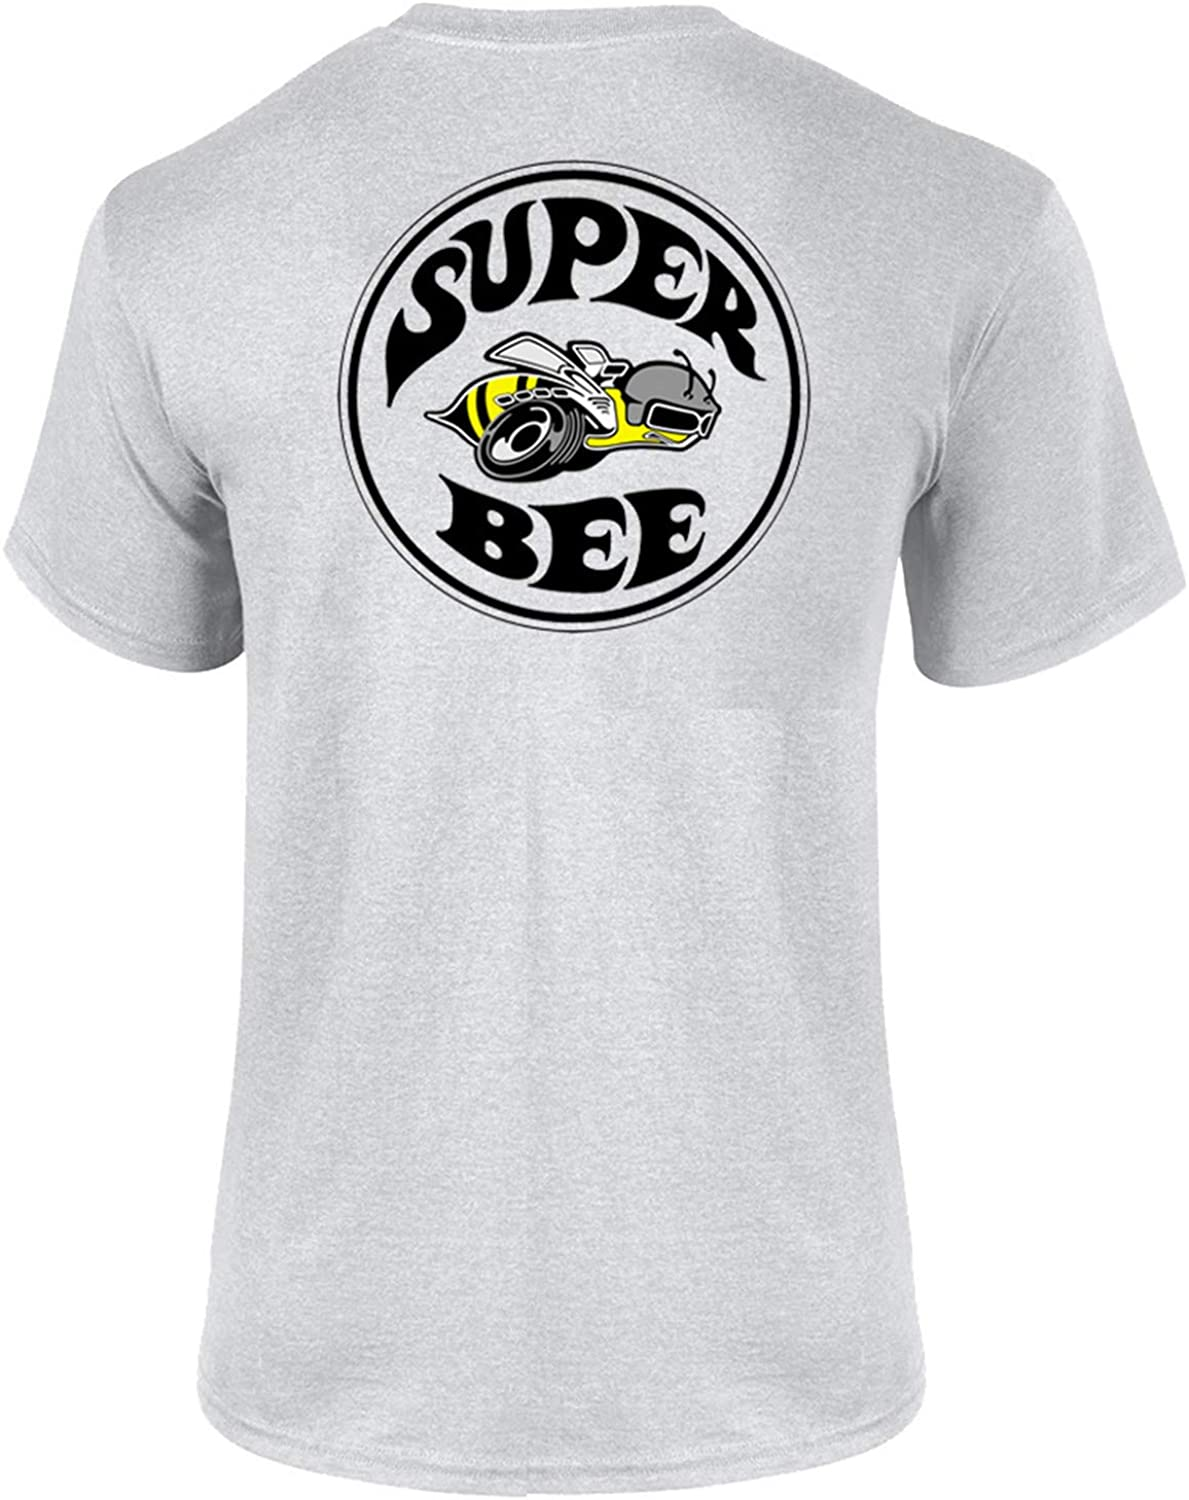 Dodge Tee Shirt Super Bee Lightgrey